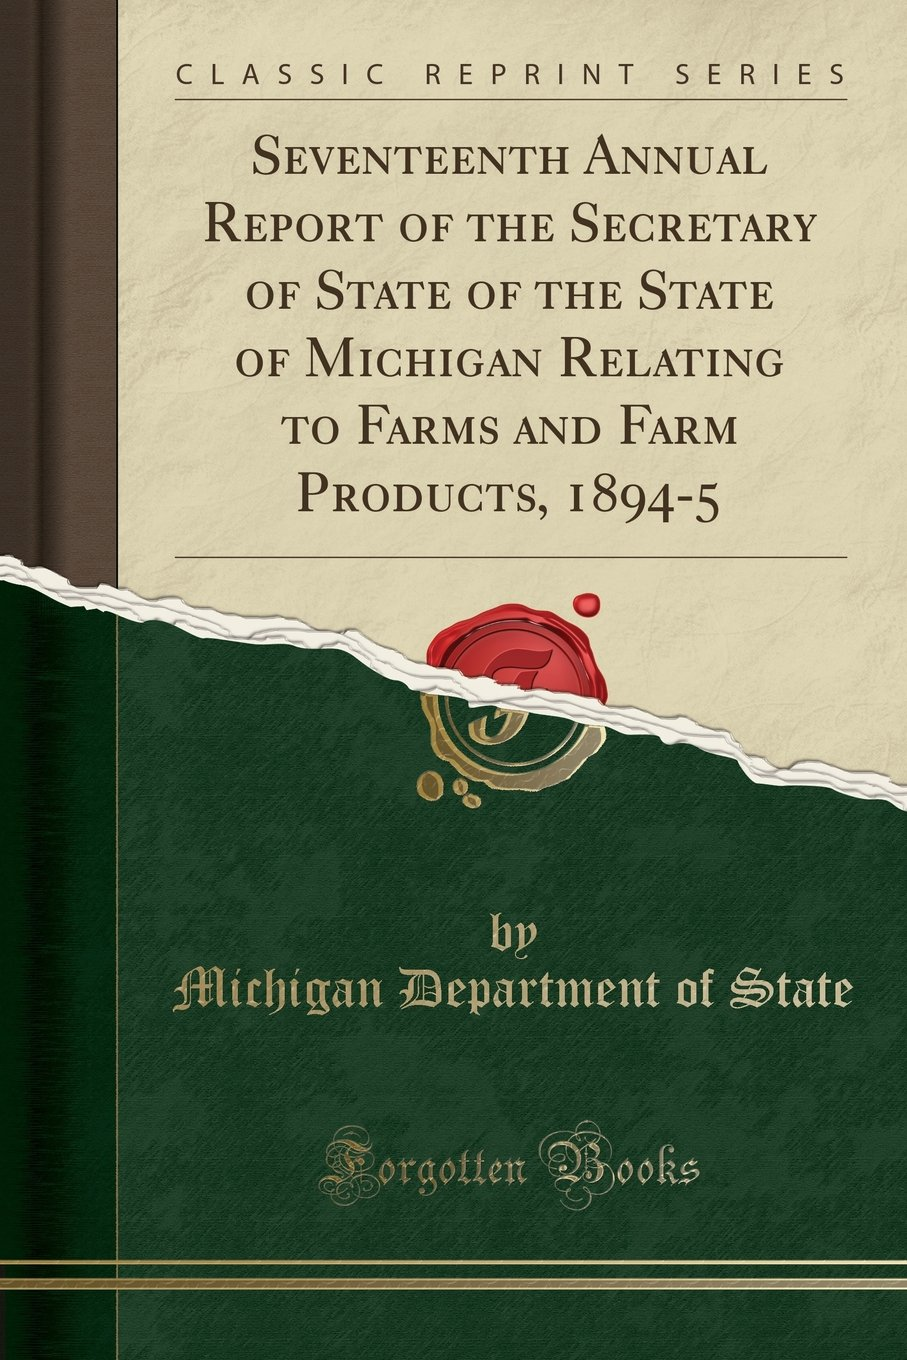 Seventeenth Annual Report of the Secretary of State of the State of Michigan Relating to Farms and Farm Products, 1894-5 (Classic Reprint) PDF